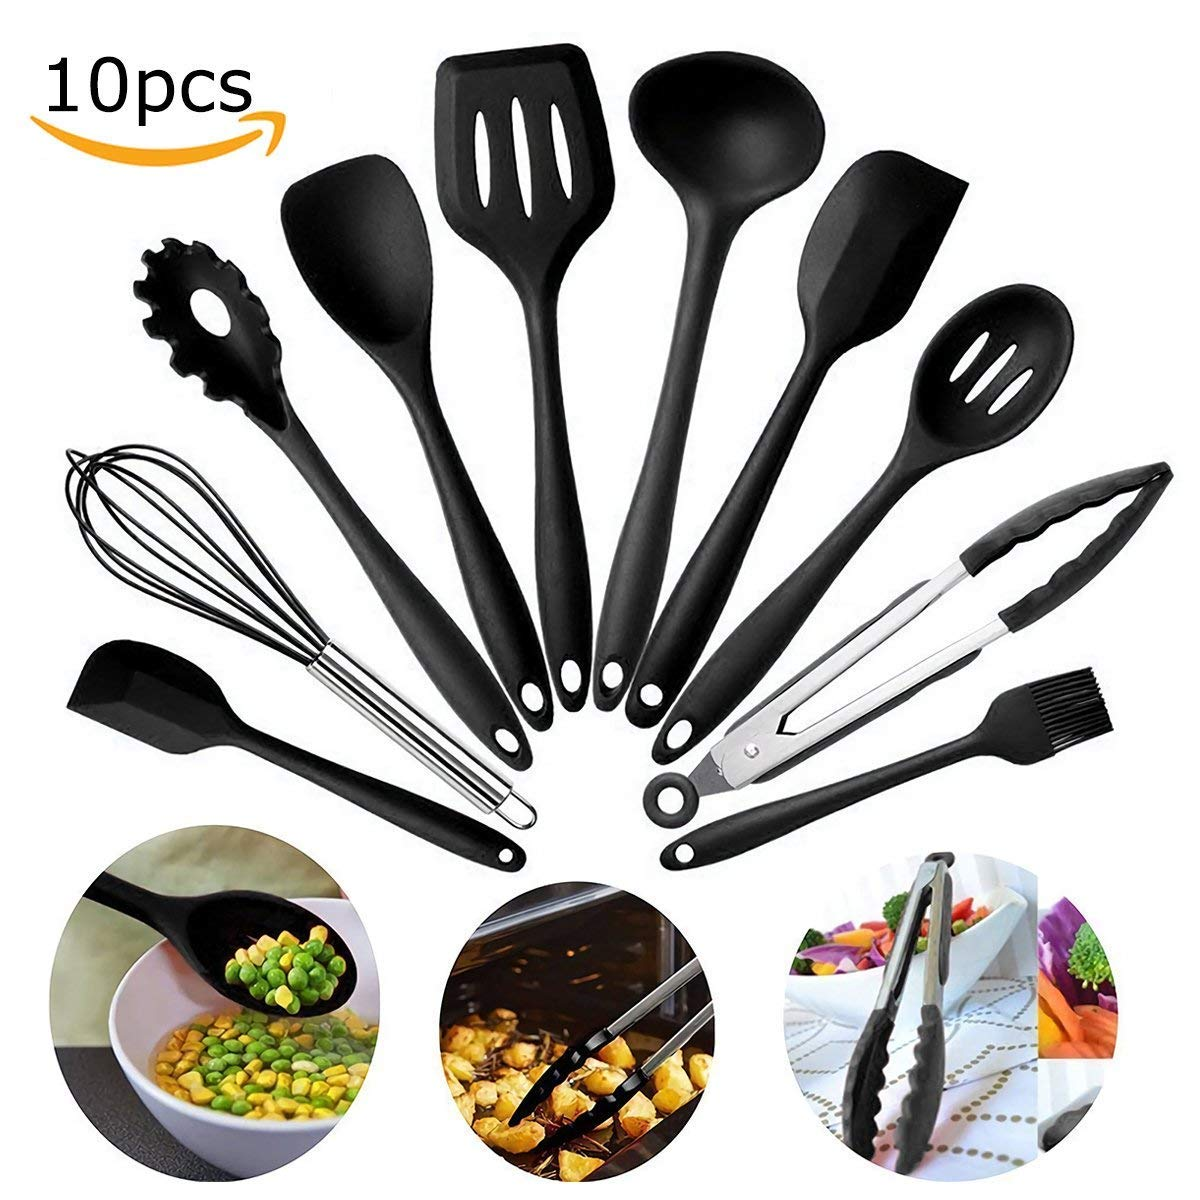 Kitchen Utensil Set Nylon Potato Masher - Non-Stick, Non-Scratch, Heat Resistant, Dishwasher Safe, Eco-Friendly Cooking Tools & Accessories 10pcs/Set (Black)